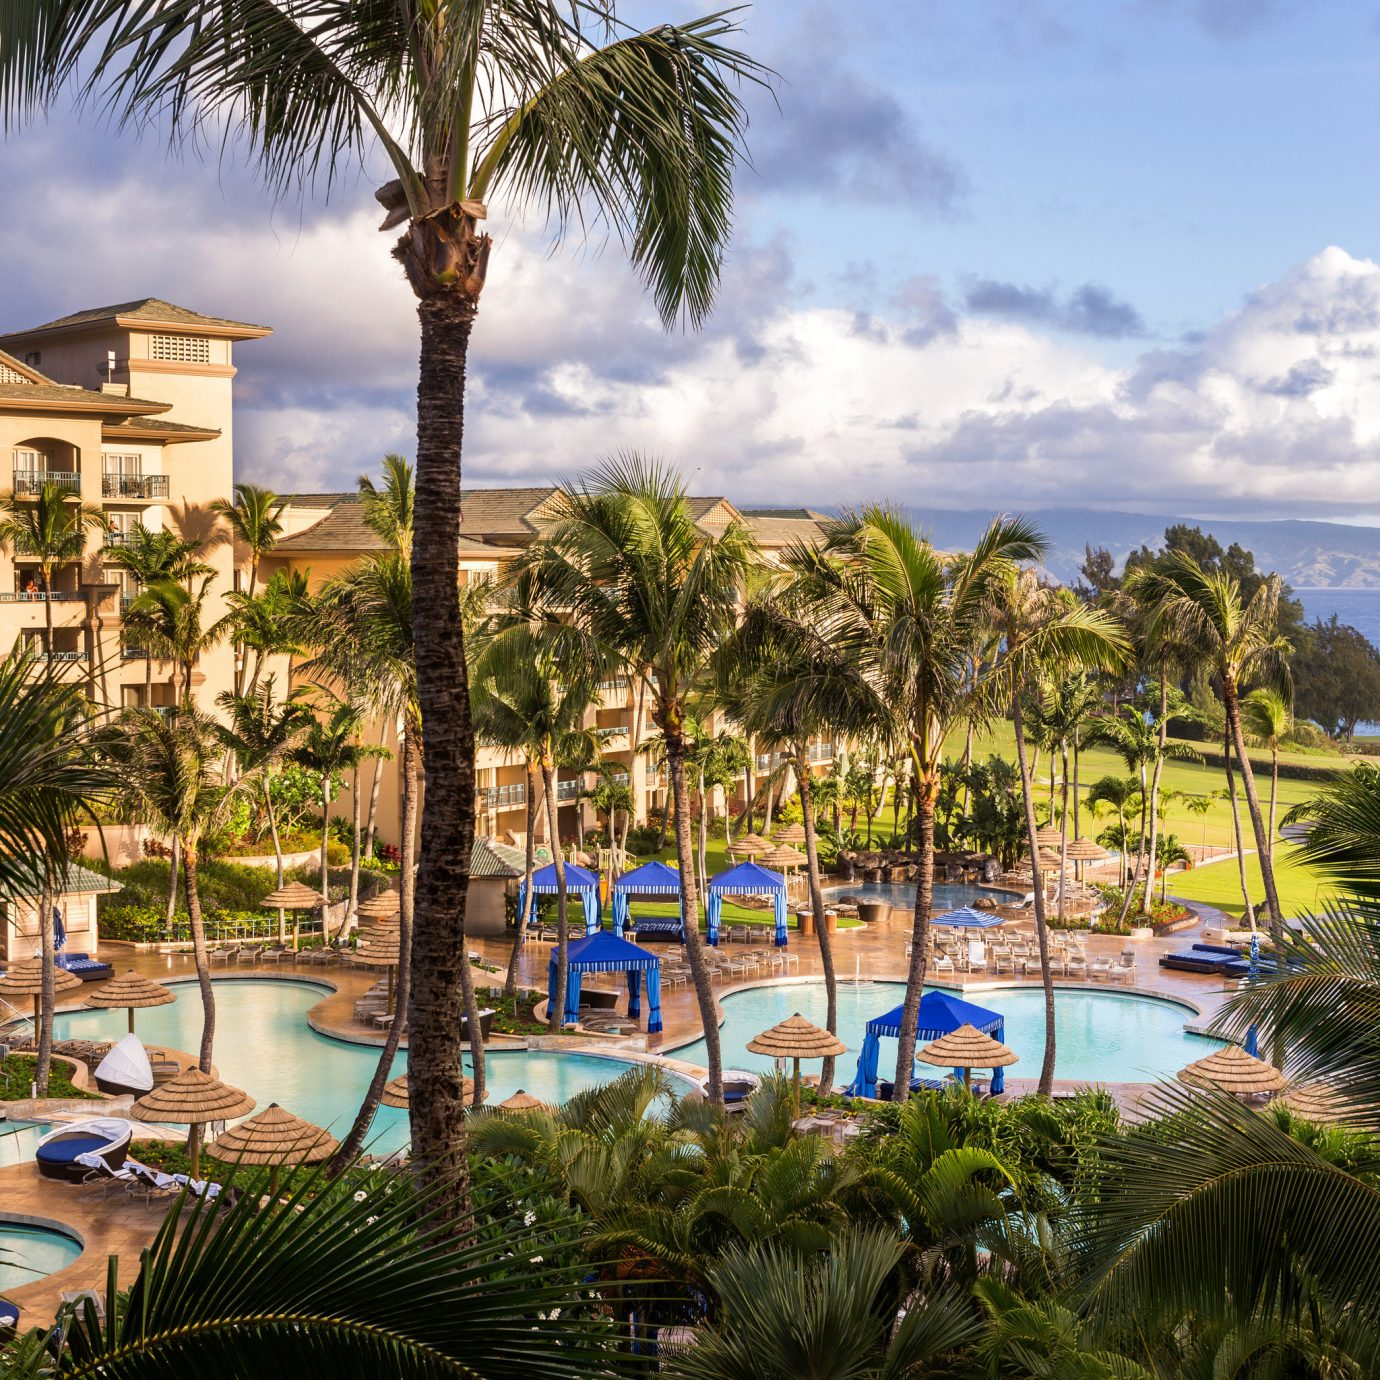 Beach Boutique Hotels Hotels Luxury Travel tree sky palm plant Resort leisure property swimming pool arecales palm family condominium lined colorful caribbean tropics shore